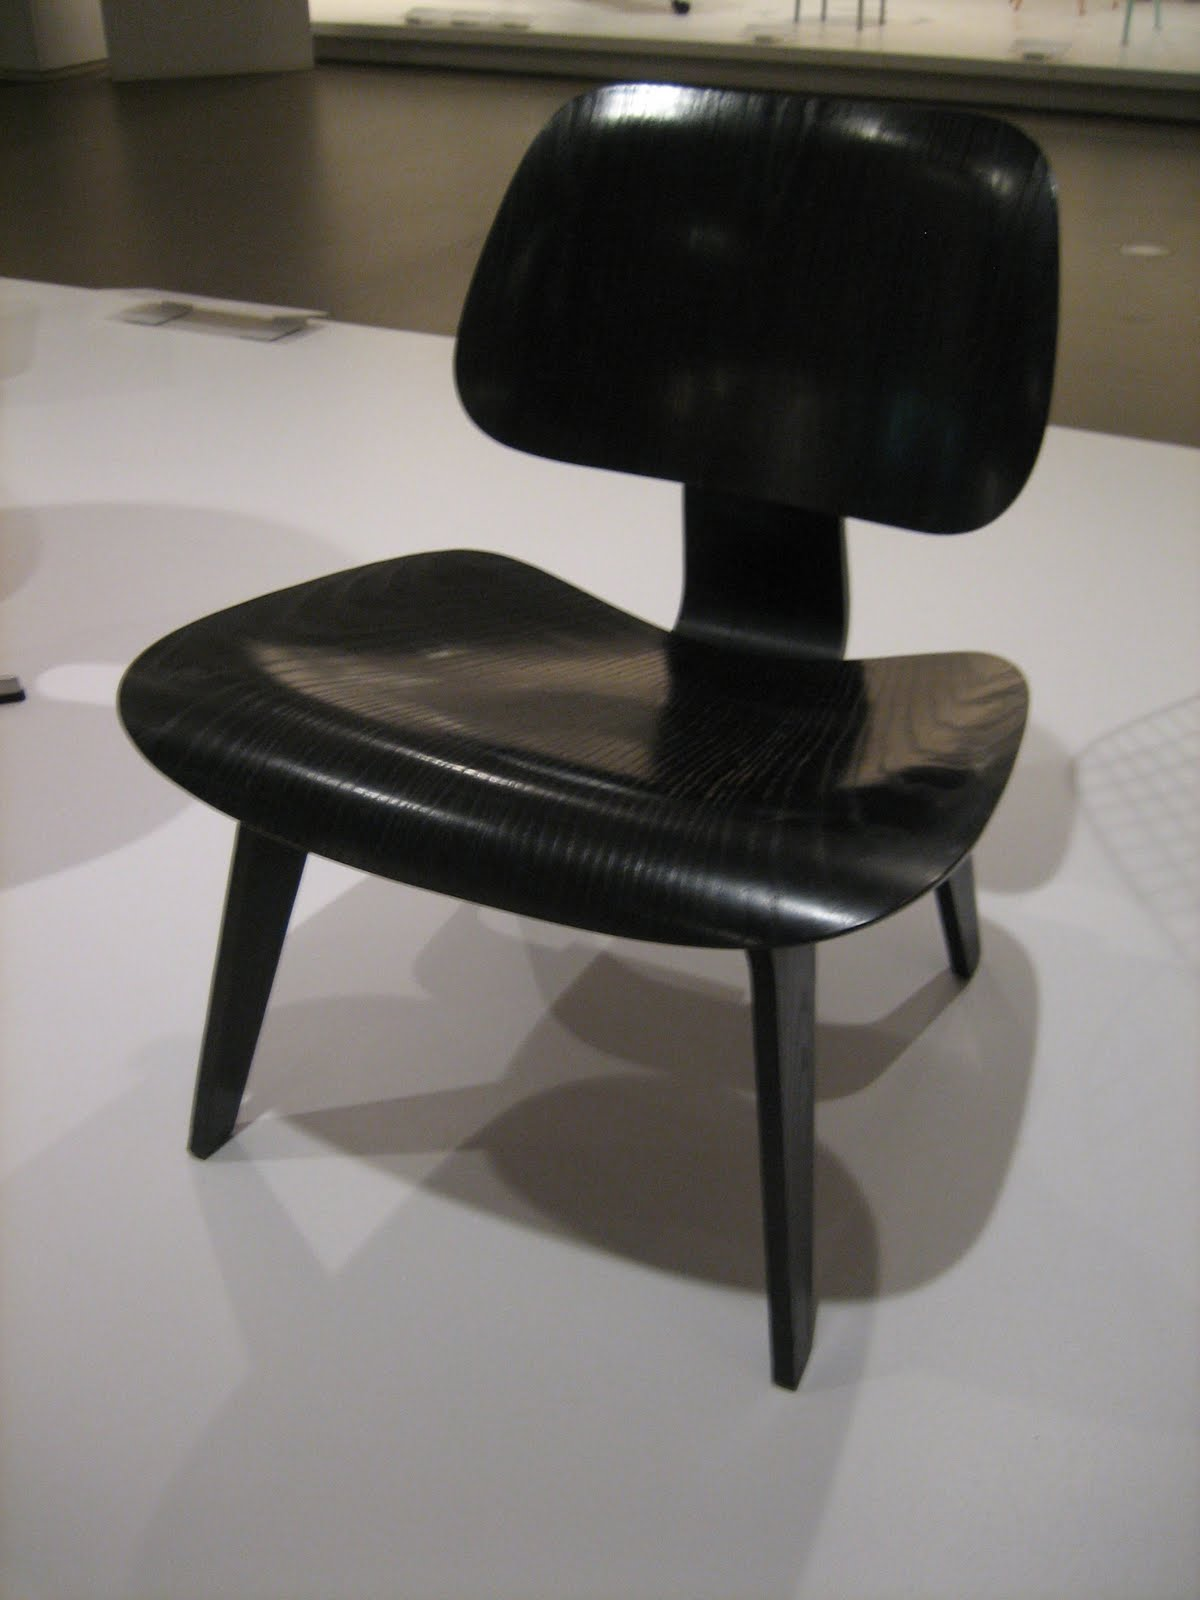 sixue contextual essay charles eames designed some of the most important examples of 20th century furniture he also applied his talents to devising ingenious children s toys